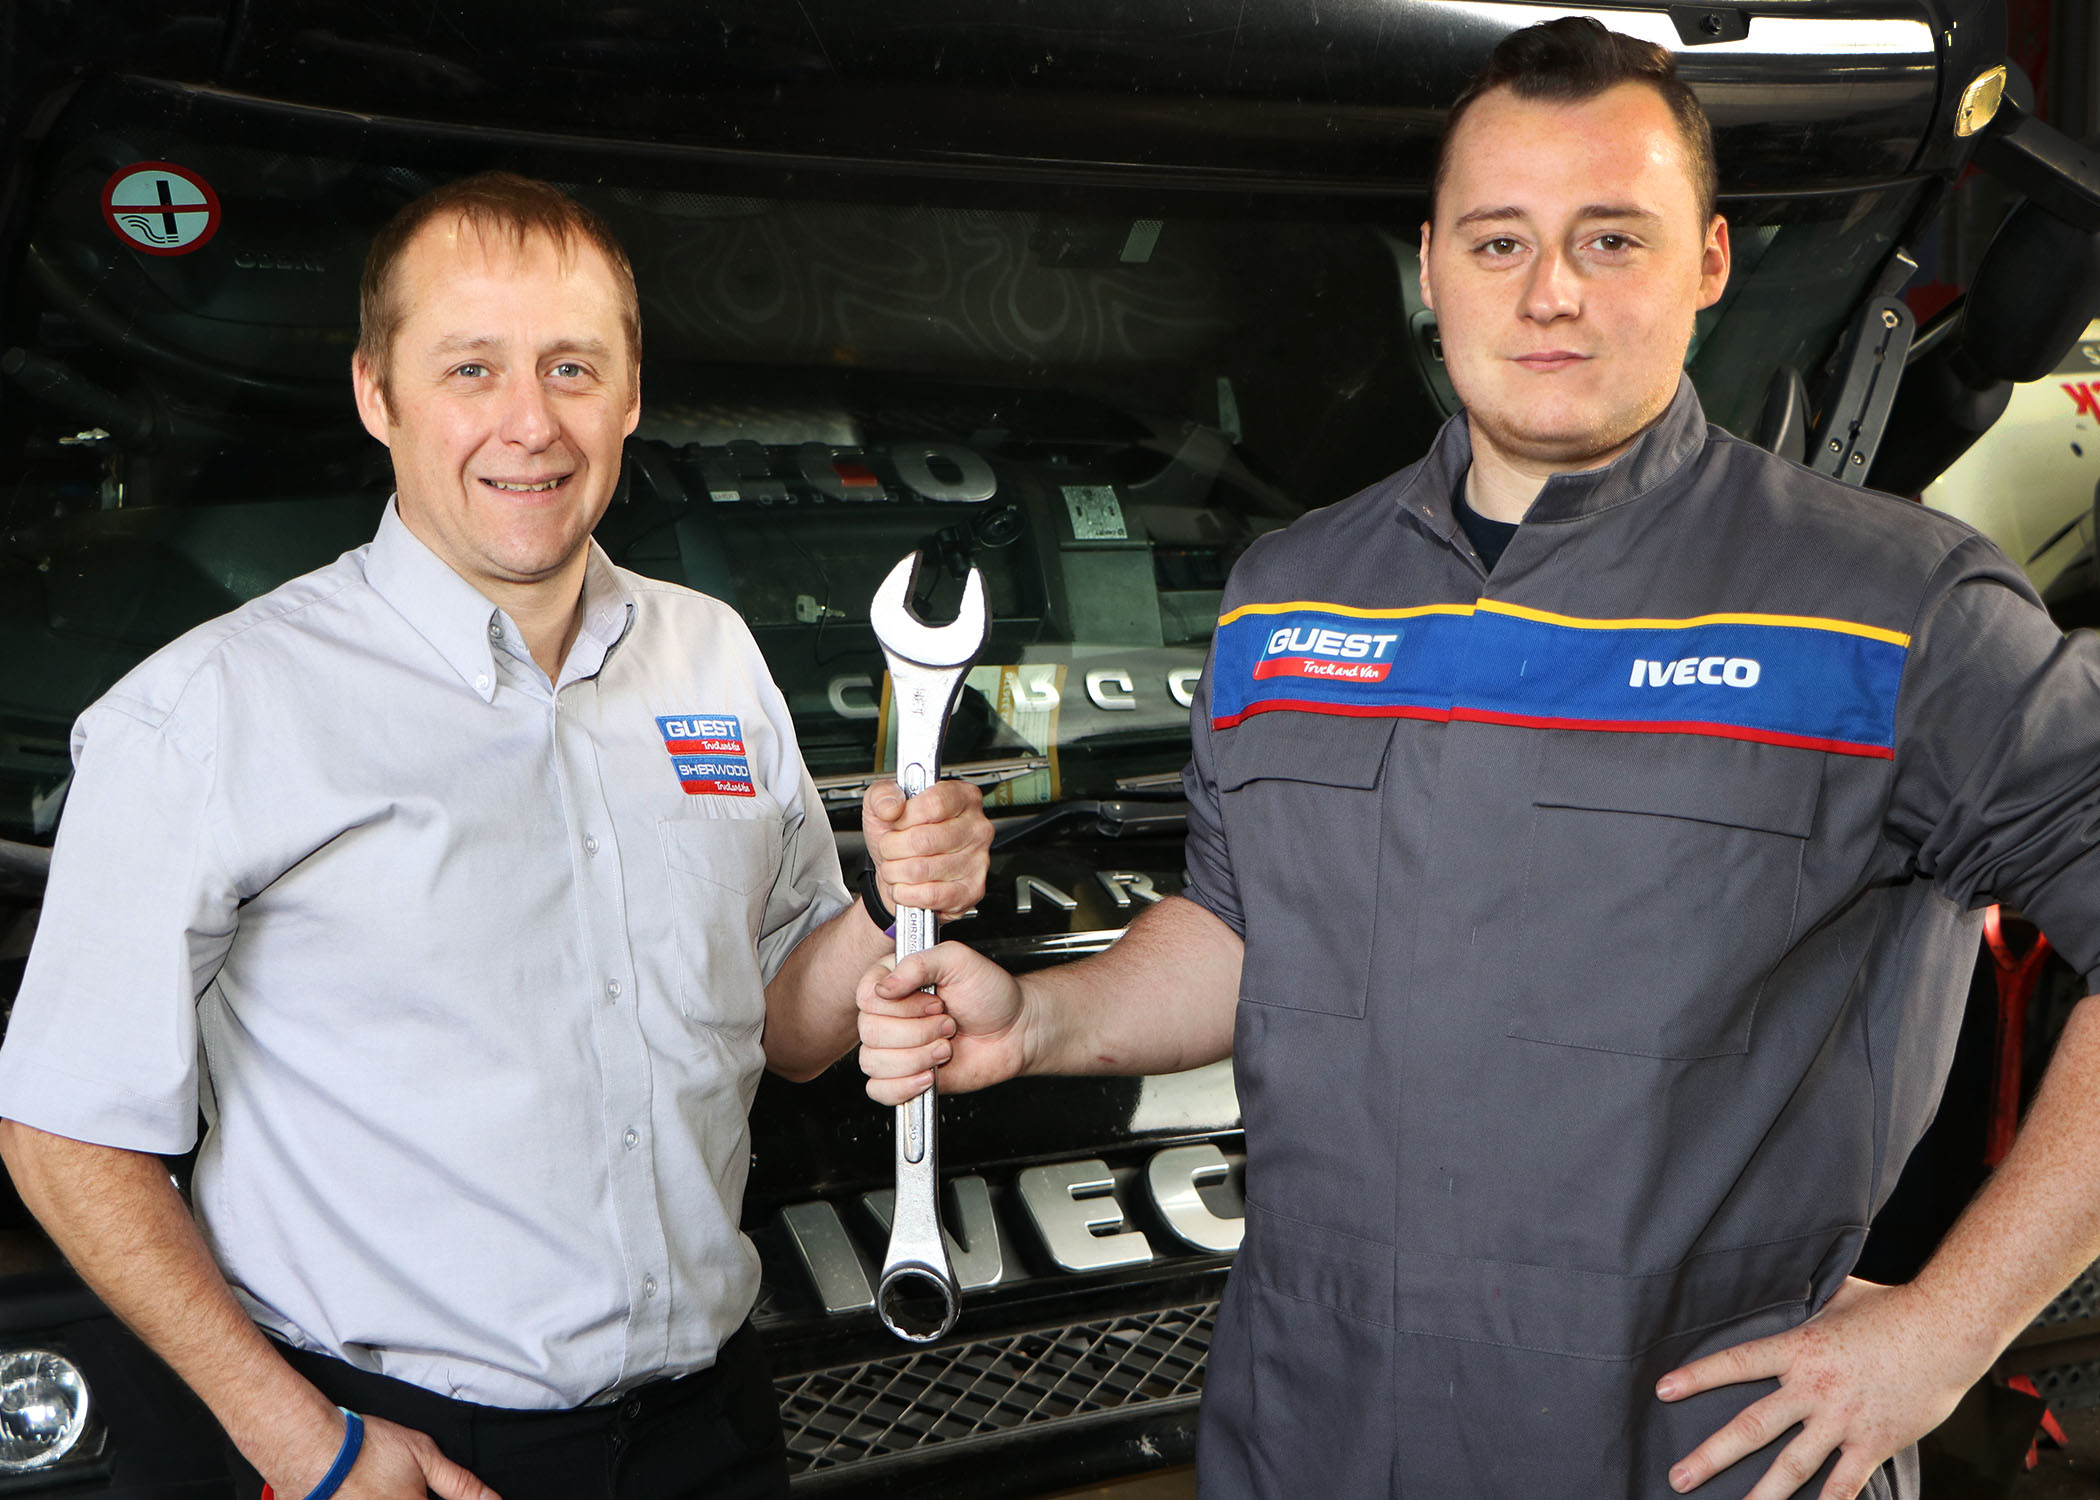 Guest Truck and Van - Craig Richards with son Andrew Richards pic 1.jpg